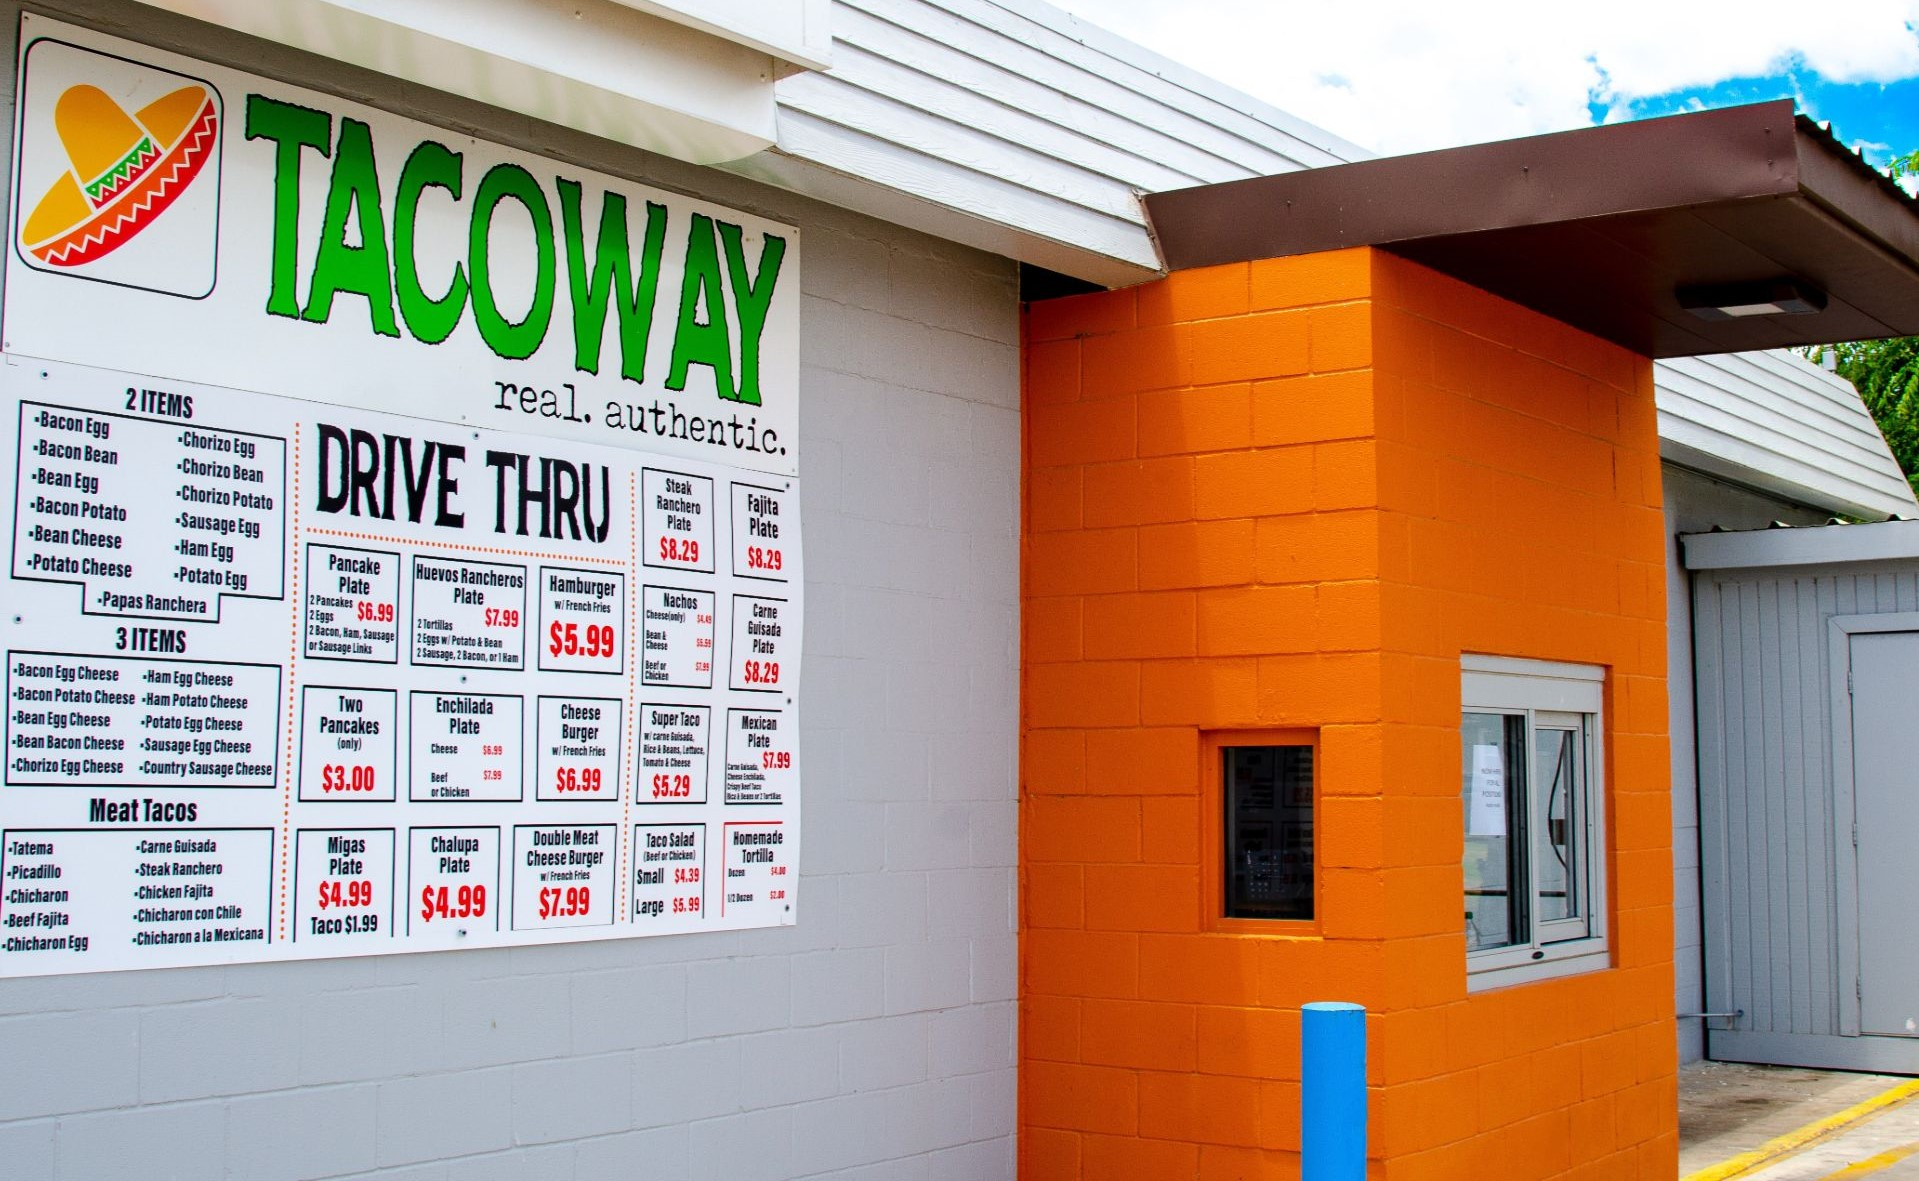 Drive thru window of Taco Way with a large menu on the wall